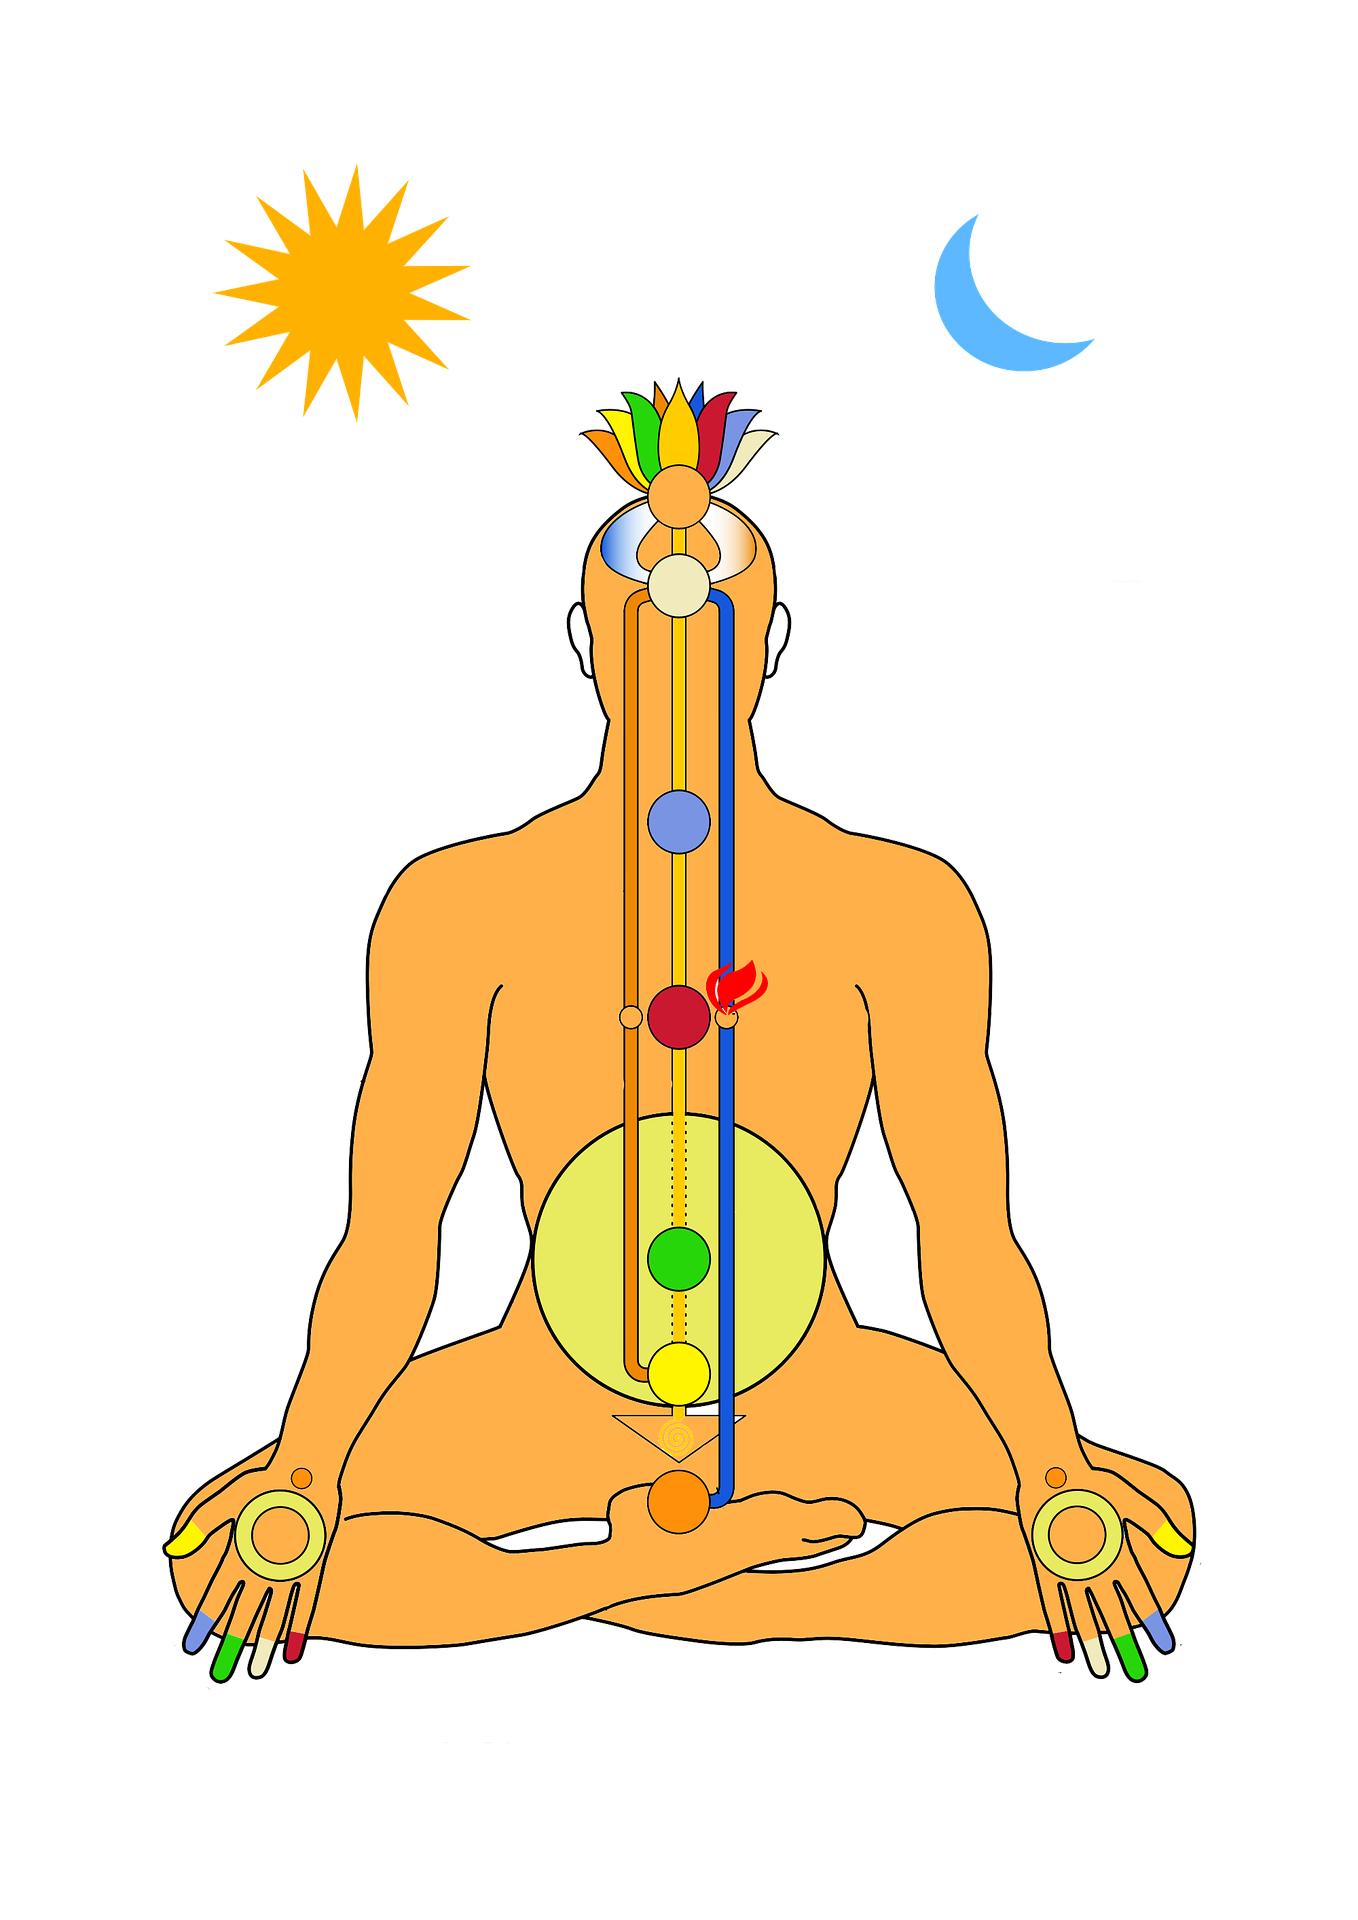 "Why are chakras so important to our well-being?<span class=""rating-result after_title mr-filter rating-result-4650"" >	<span class=""mr-star-rating"">			    <i class=""fa fa-star mr-star-full""></i>	    	    <i class=""fa fa-star mr-star-full""></i>	    	    <i class=""fa fa-star mr-star-full""></i>	    	    <i class=""fa fa-star mr-star-full""></i>	    	    <i class=""fa fa-star-half-o mr-star-half""></i>	    </span><span class=""star-result"">	4.67/5</span>			<span class=""count"">				(3)			</span>			</span>"